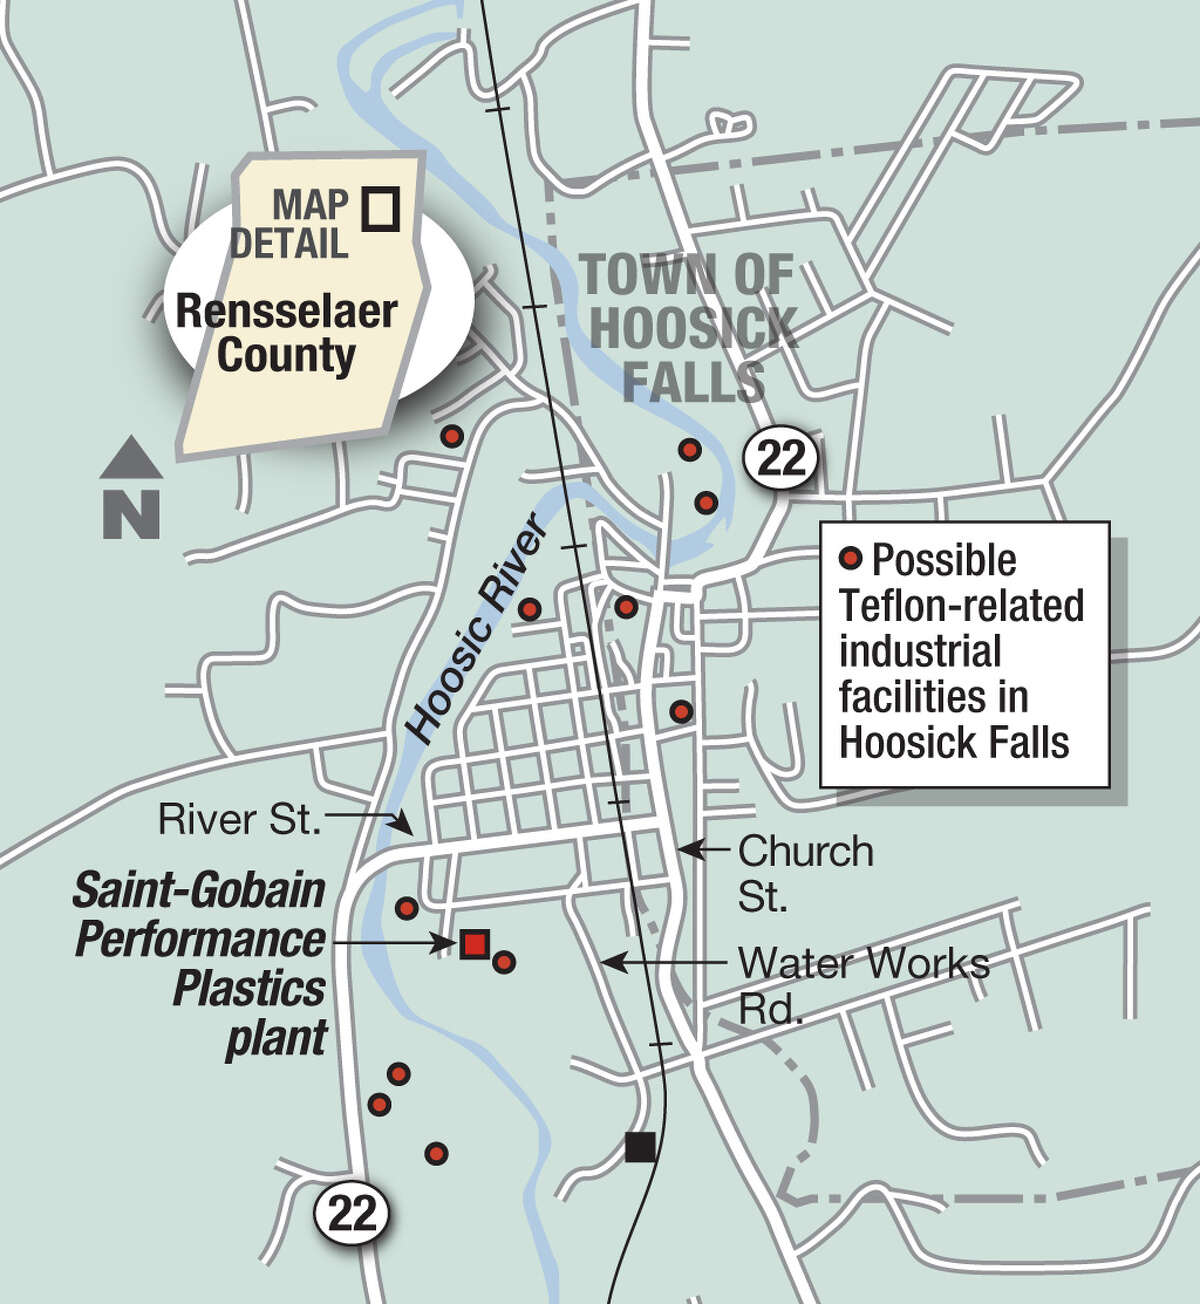 The DEC released a map in January identifying 11 current and former manufacturing sites in Hoosick Falls where it said PFOA chemicals may have been used in processing. The sites are John Street, McCaffrey Street, Carey Avenue, Church Street, three locations on River Road, Liberty Street, First Street and two locations on Mechanic Street.